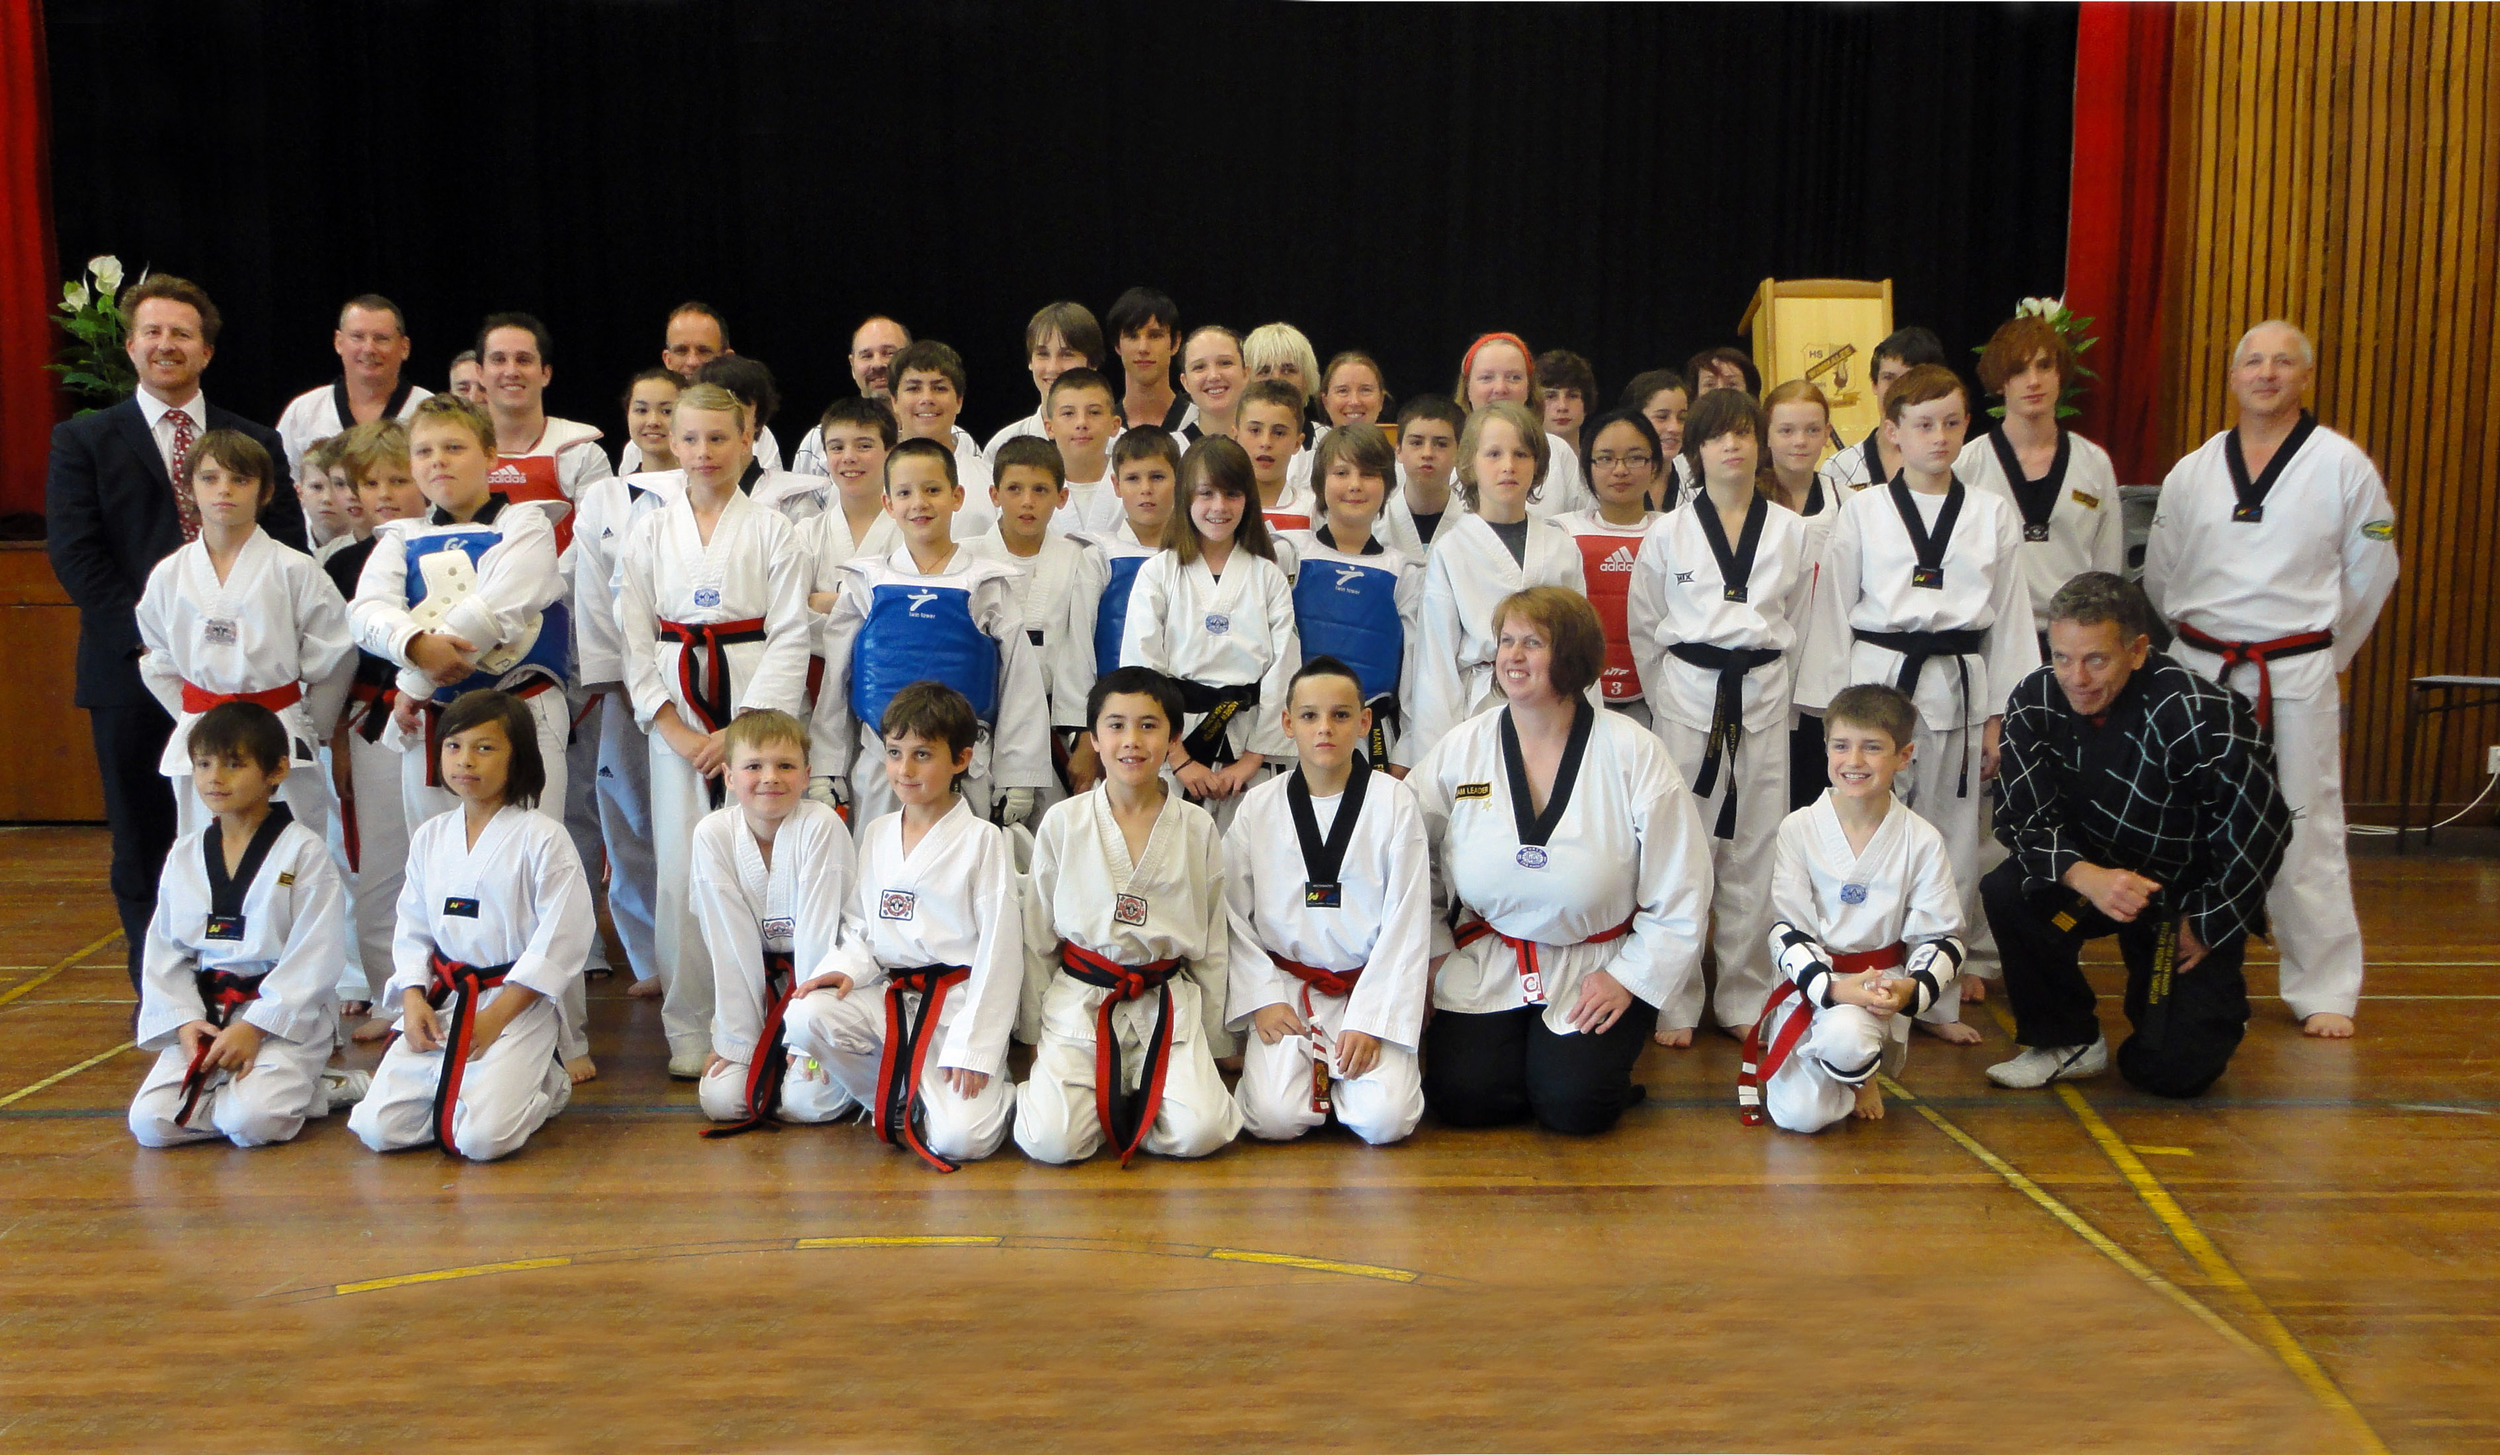 Provisional Black Belts